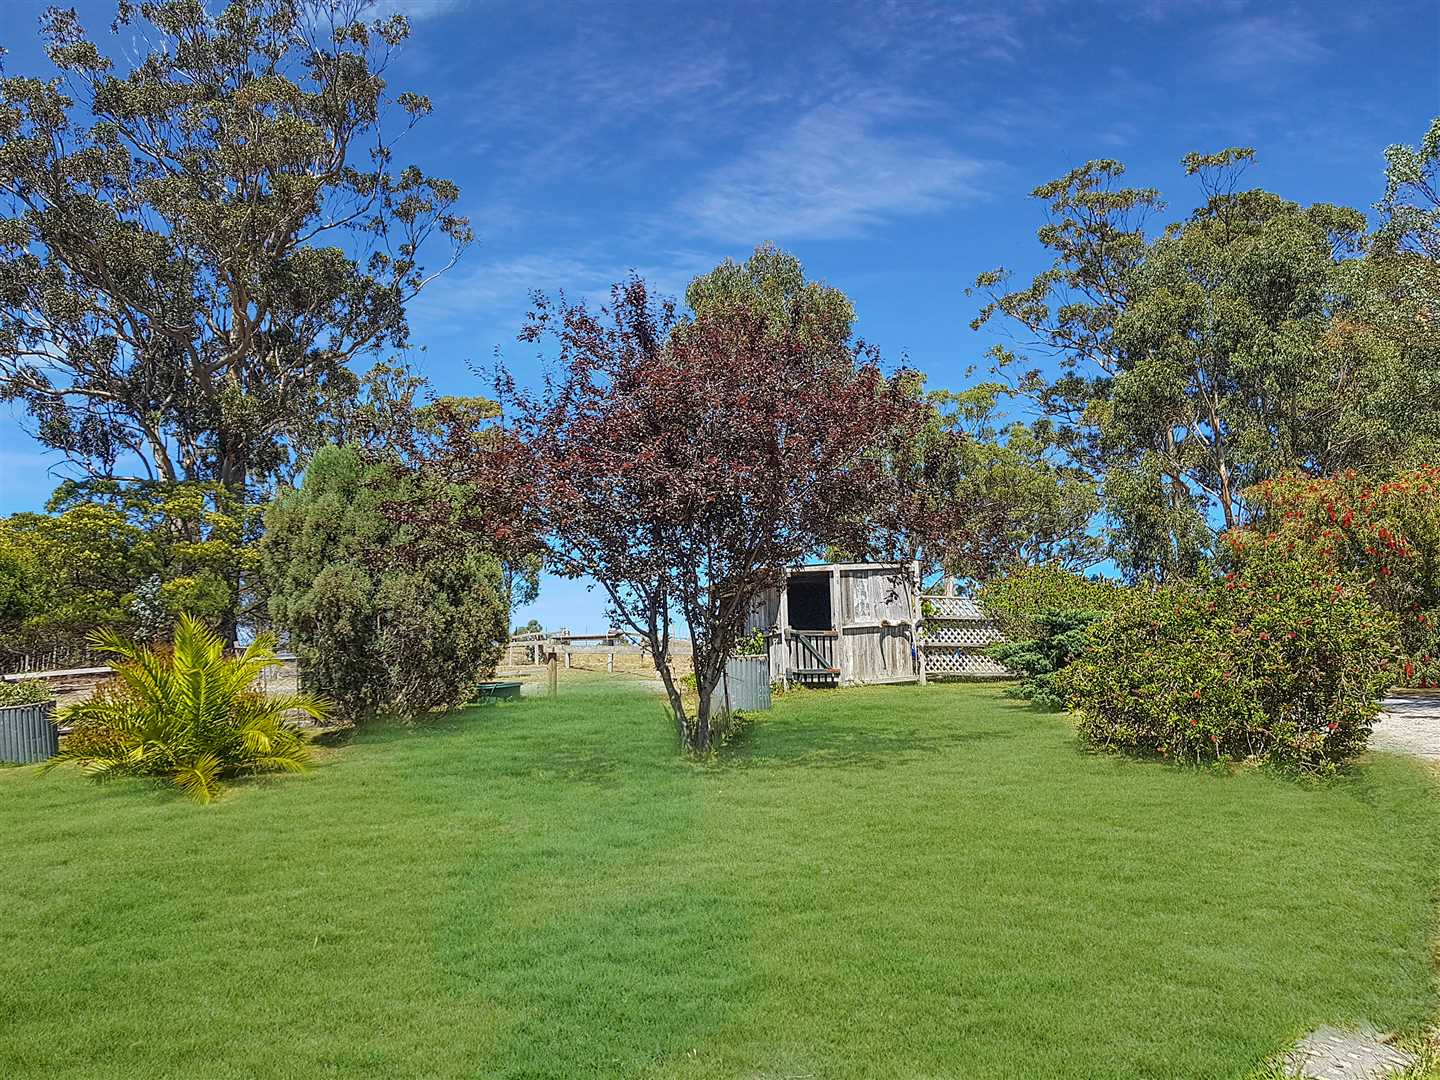 Well maintained gardens and lawns